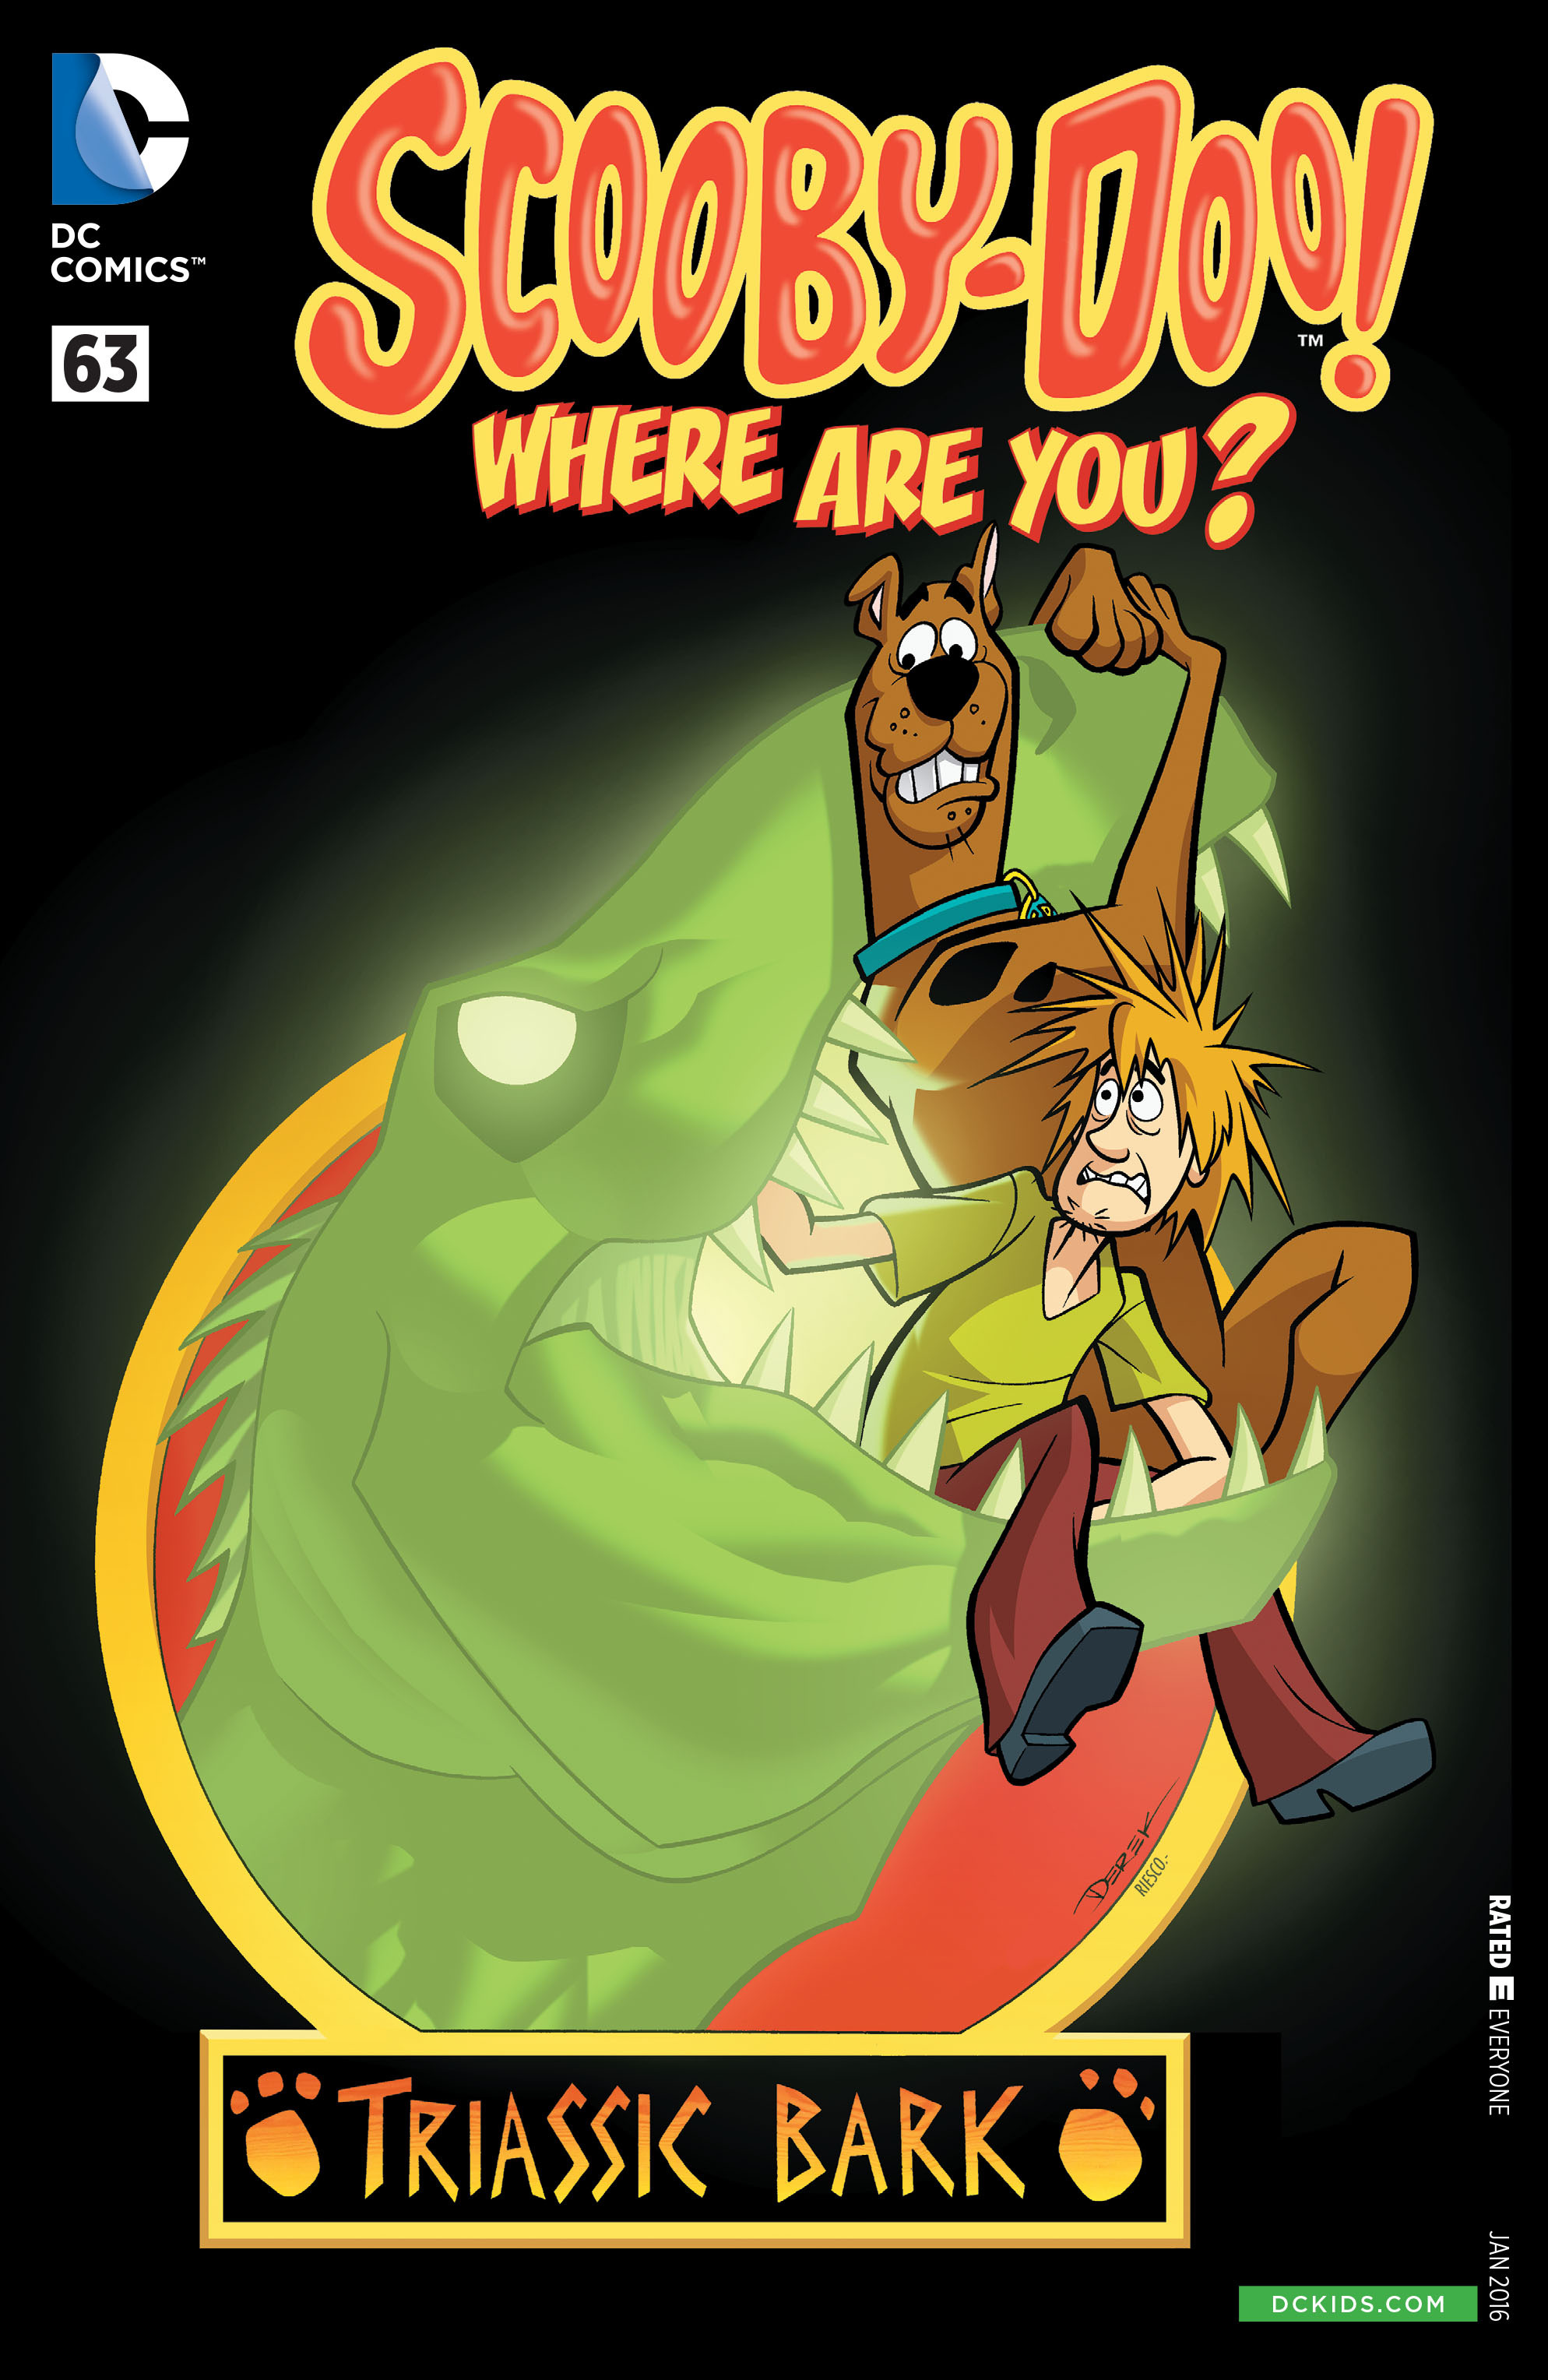 Read online Scooby-Doo: Where Are You? comic -  Issue #63 - 1